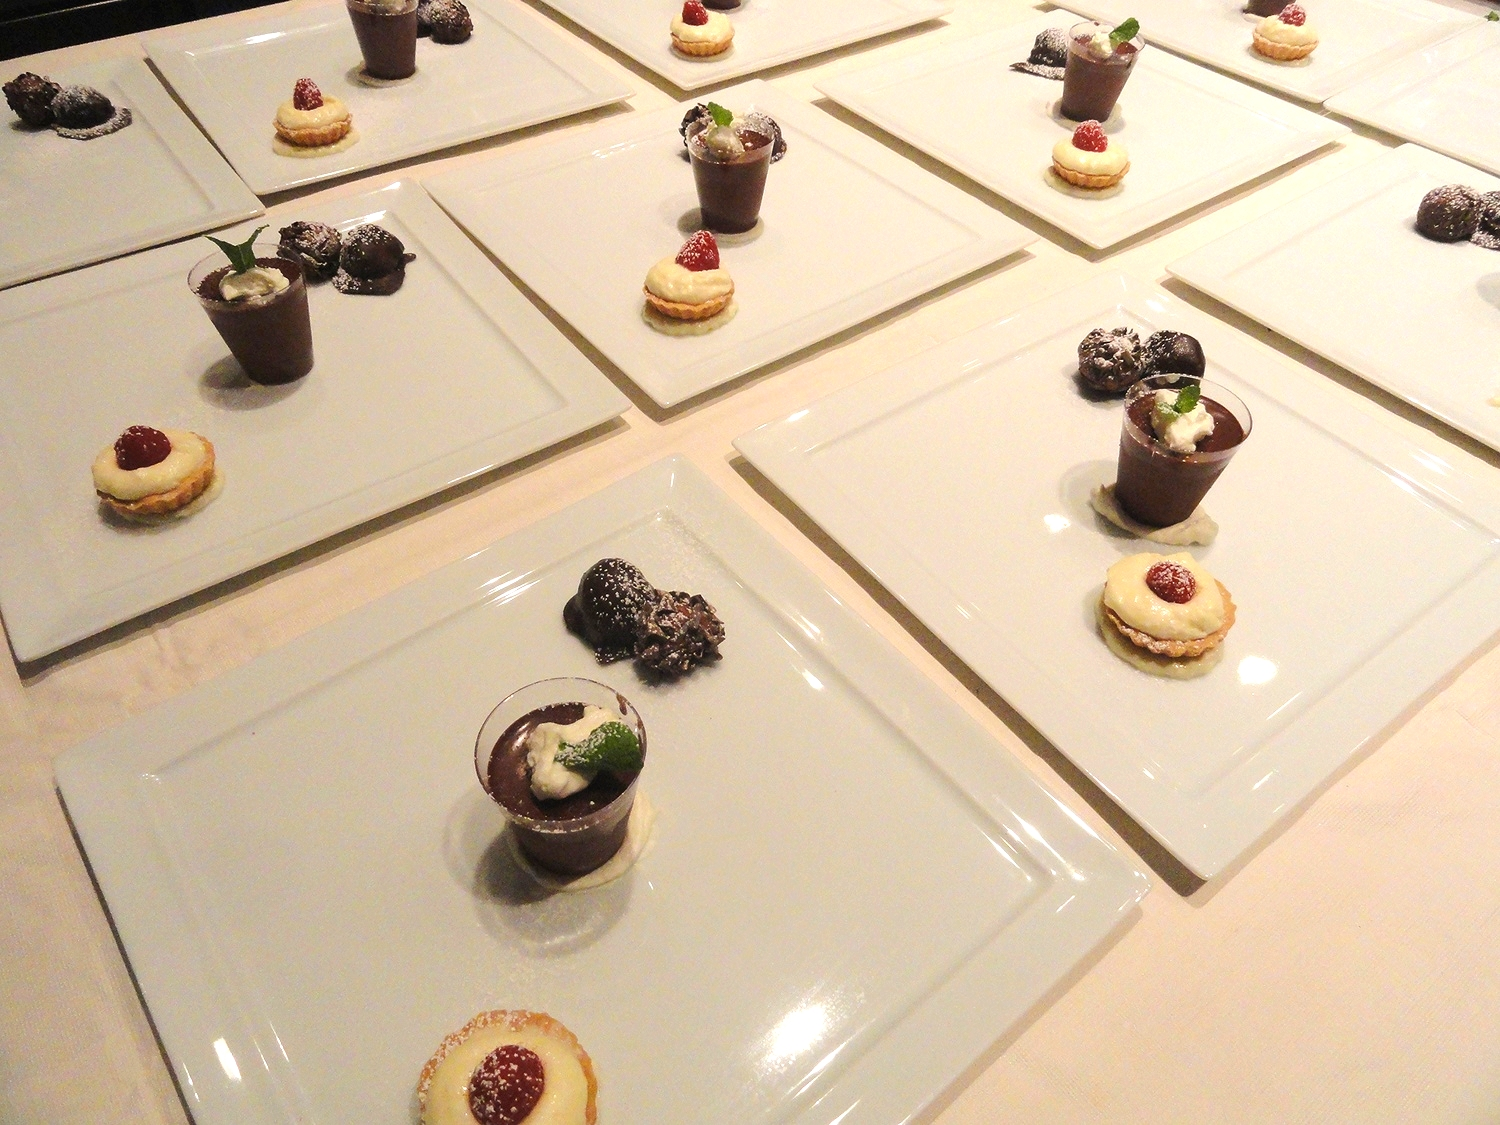 Chocolate trio: Chocolate pot de creme with minted cream, white chocolate mousse tartlet, chocolate champagne truffles